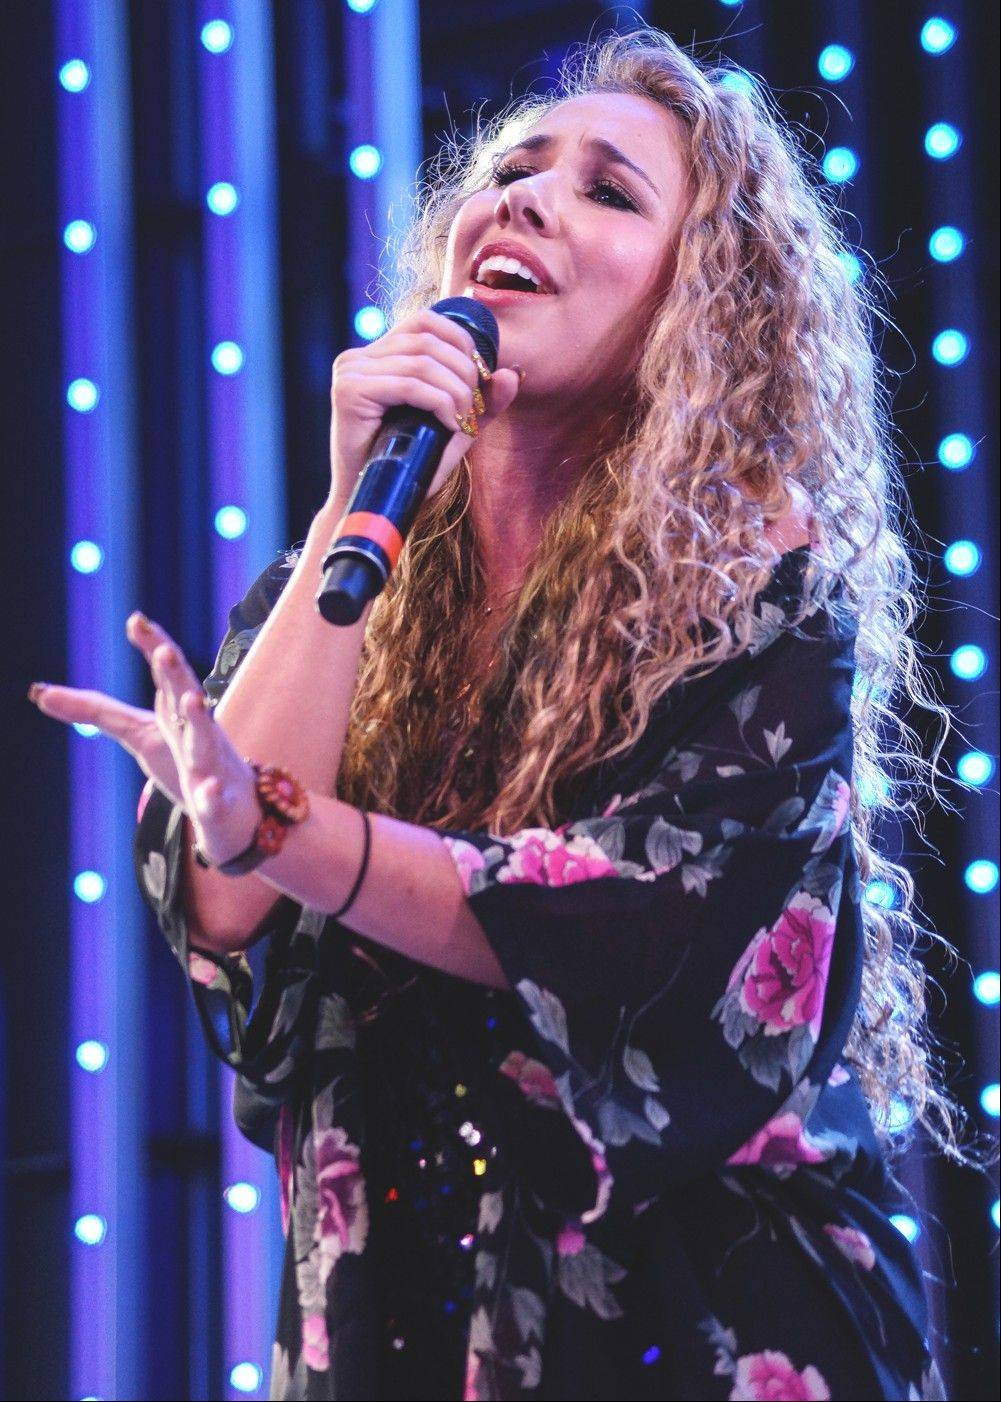 """American Idol"" season 10 finalist Haley Reinhart of Wheeling is one of the headlining artists performing at the annual Buffalo Grove Days festival in downtown Buffalo Grove. She performs at 9 p.m. Saturday, Aug. 31."